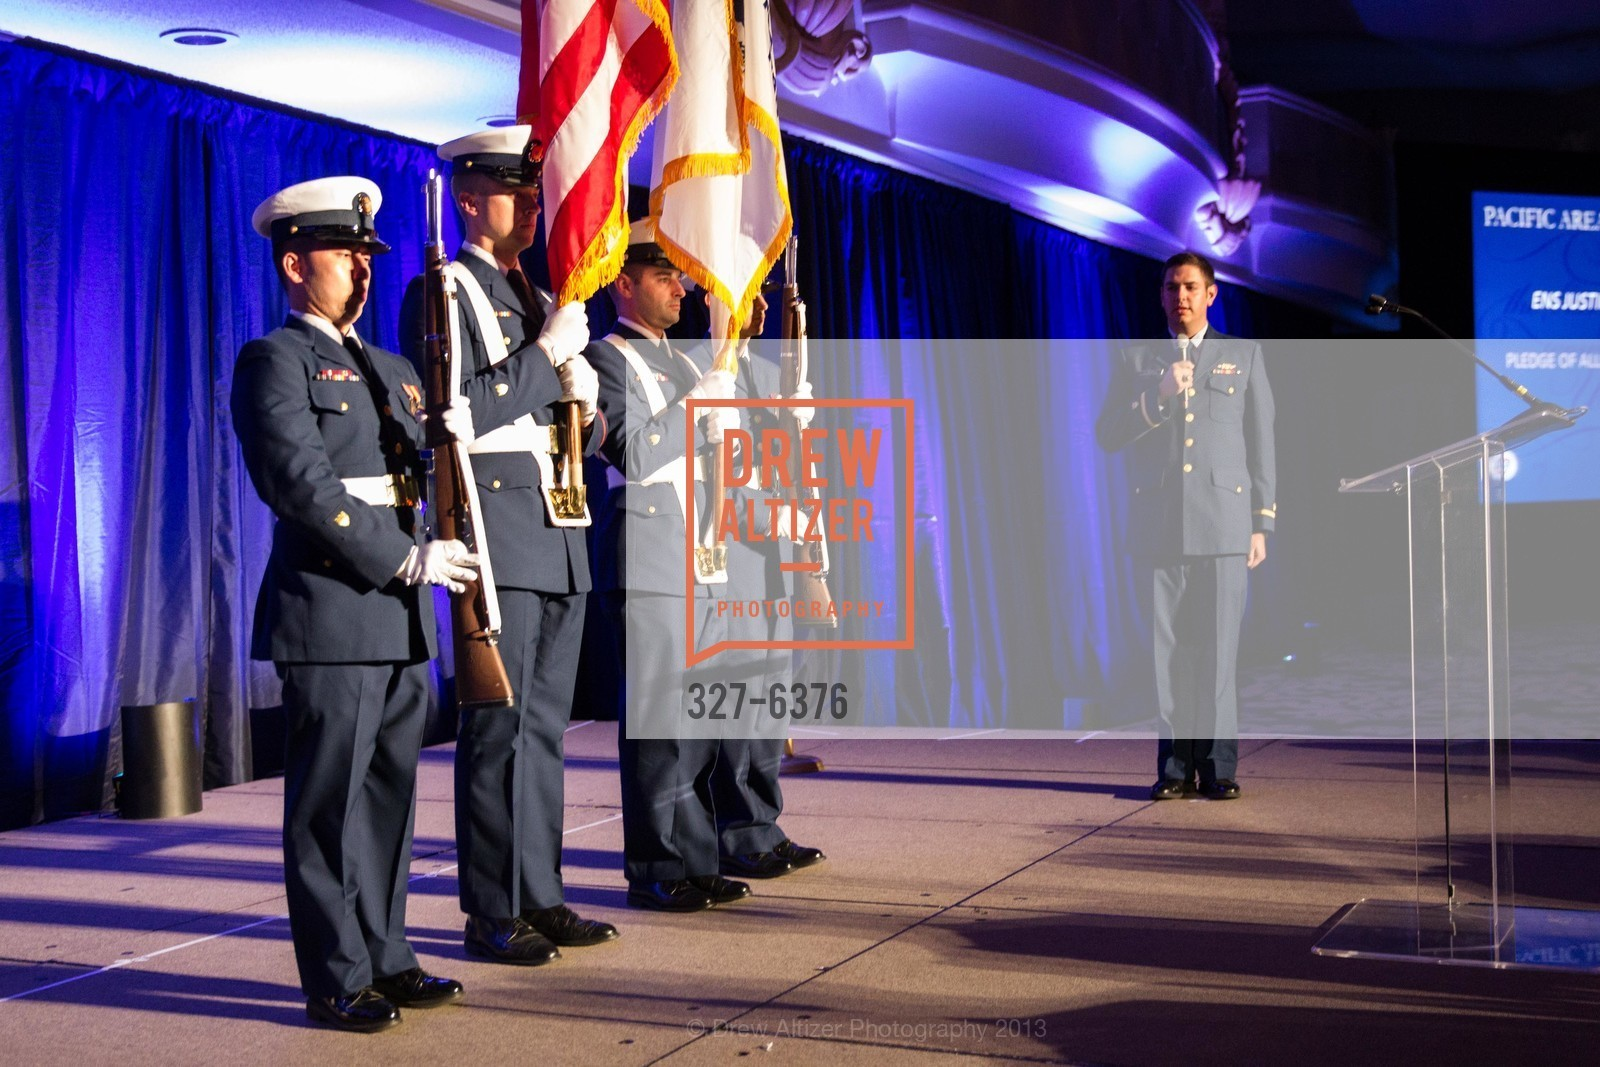 Performance at COAST GUARD FOUNDATION Presents Pacific